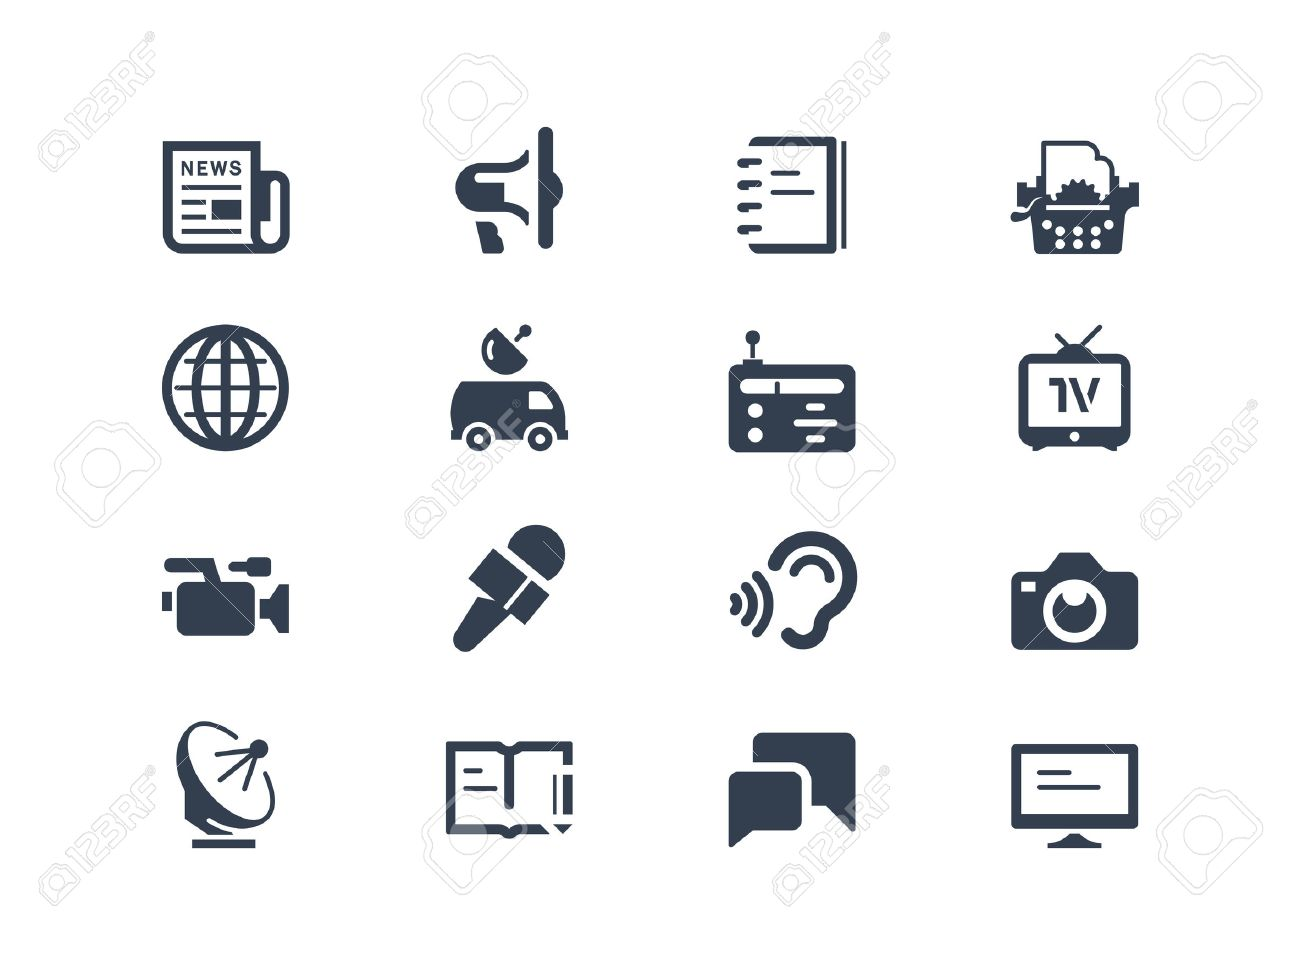 Journalism and press icons Stock Vector - 23755169